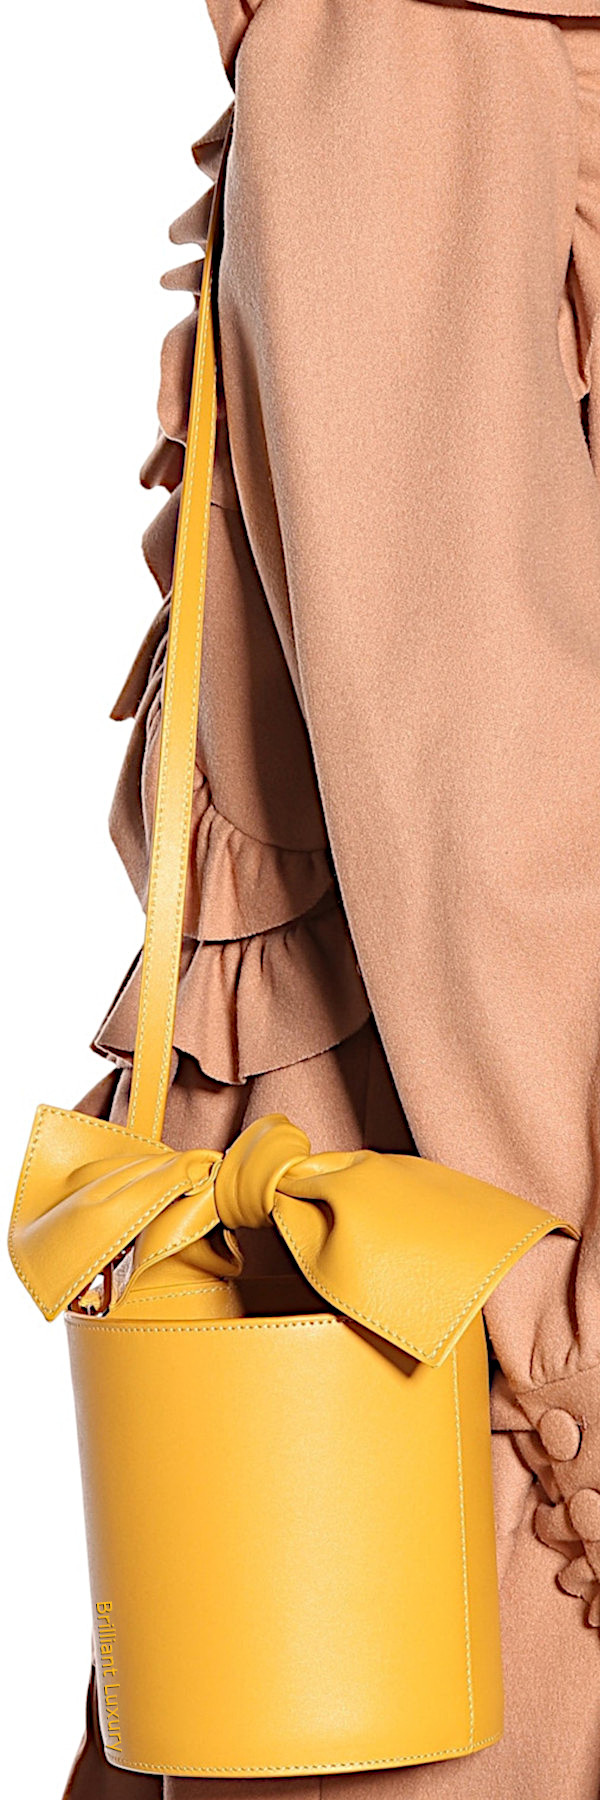 Ulla Johnson Sophie mini leather bucket bag in yellow